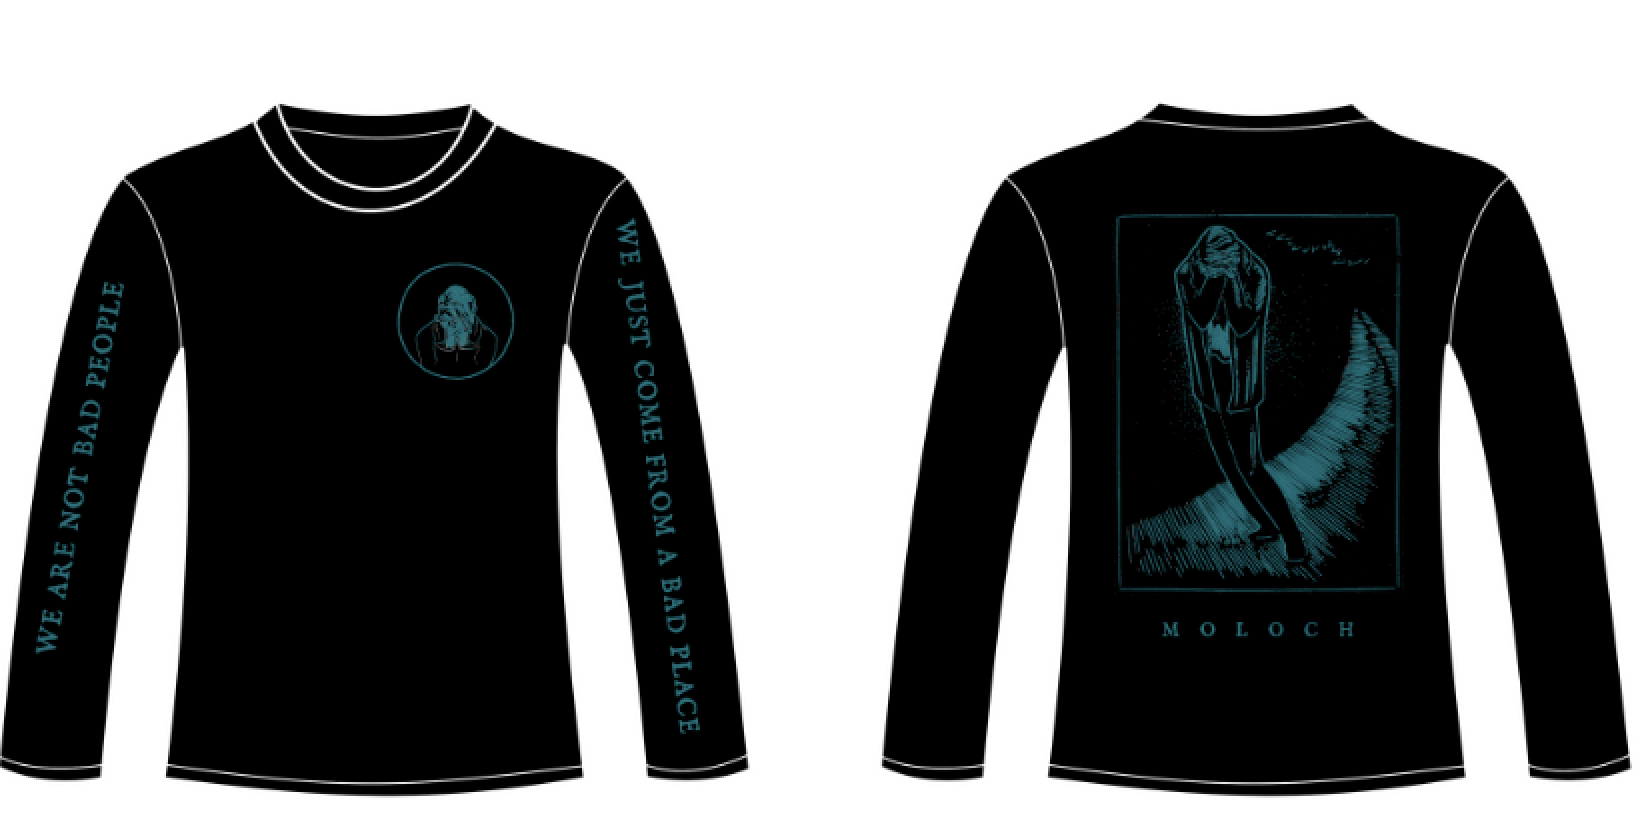 MOLOCH - A BAD PLACE LONG SLEEVE SHIRT - TEAL INK